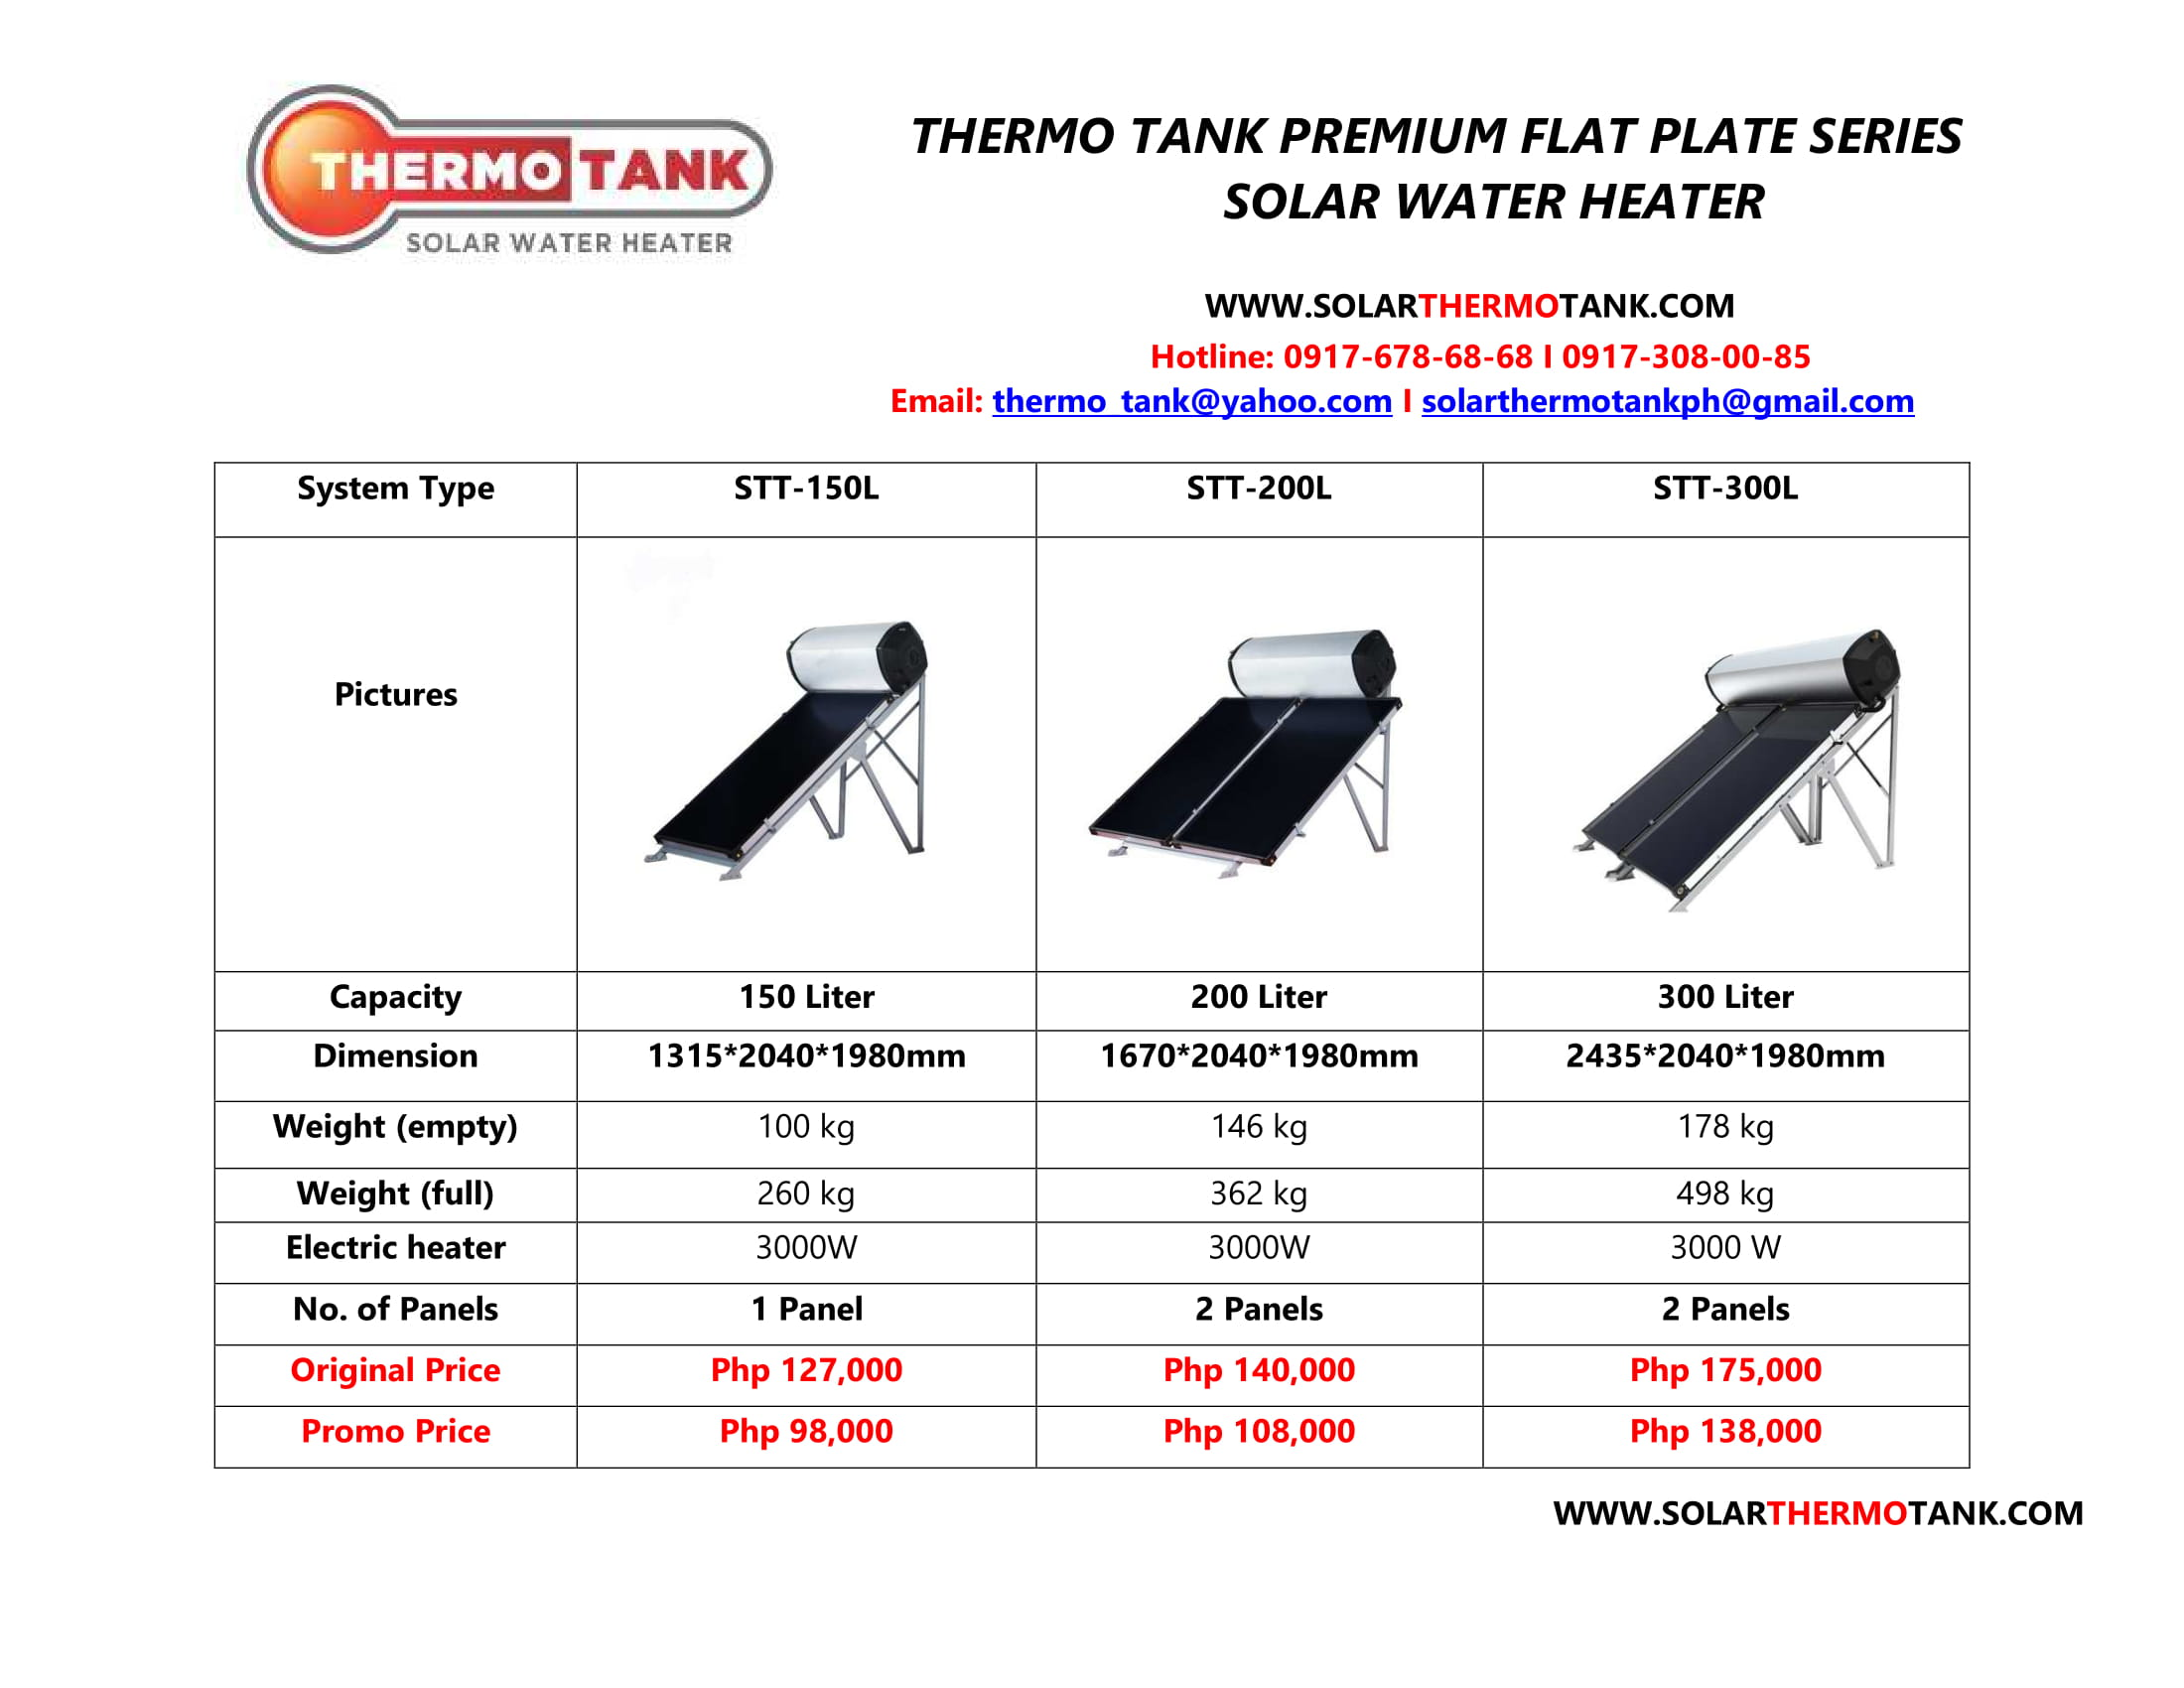 Thermo-Tank-Flat-Plate-SRP-vs-Promo